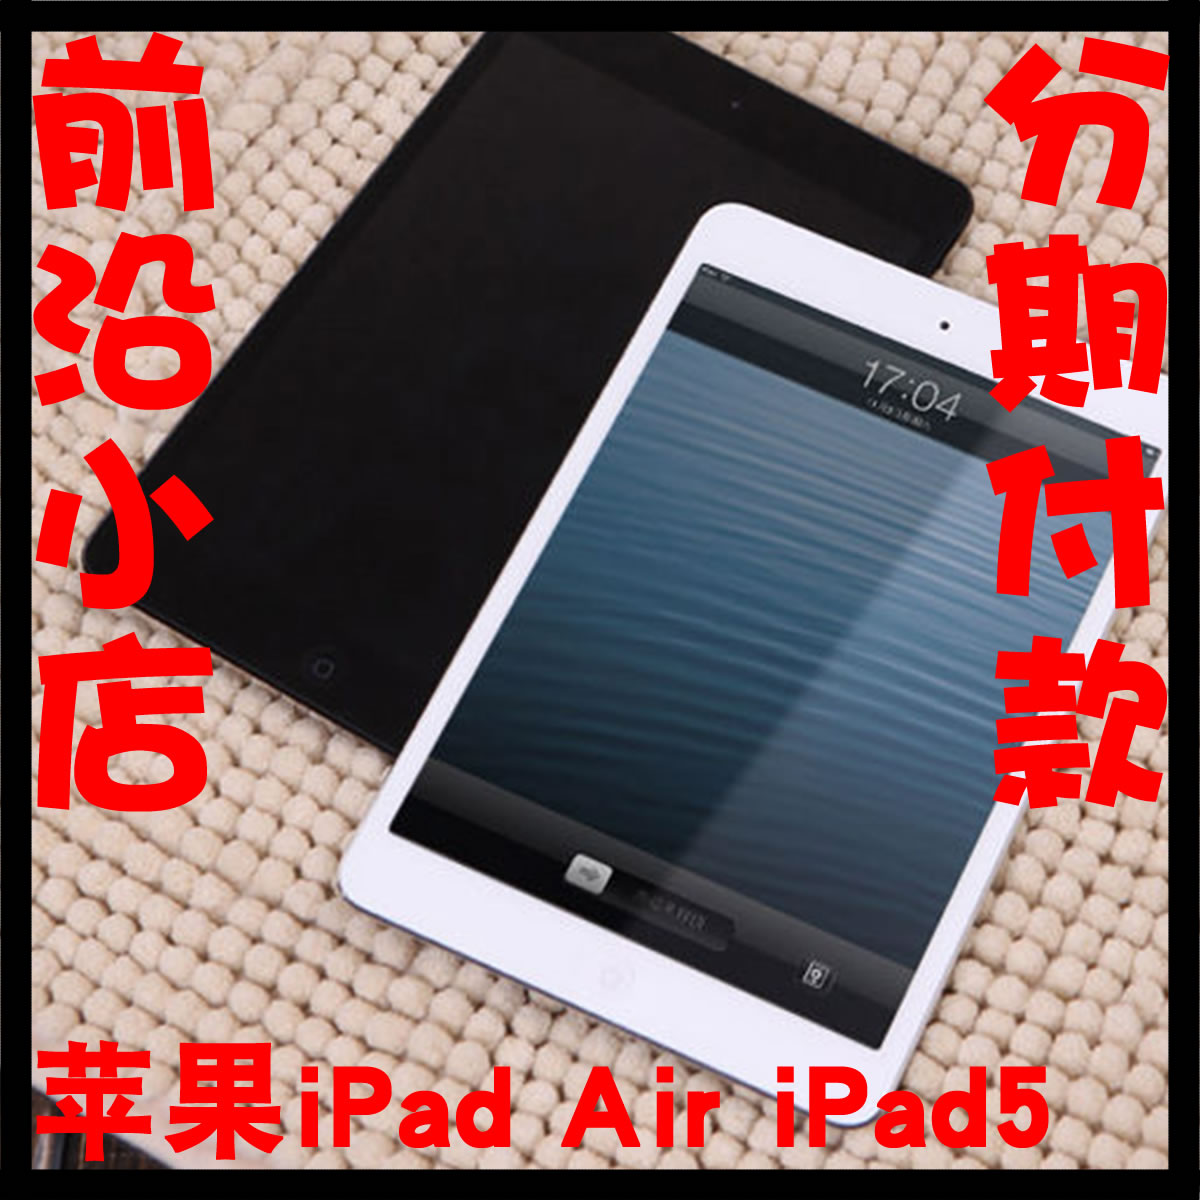 『前沿小店』Apple/苹果 iPad Air 16GB WIFI ipad5 A7双核有现货